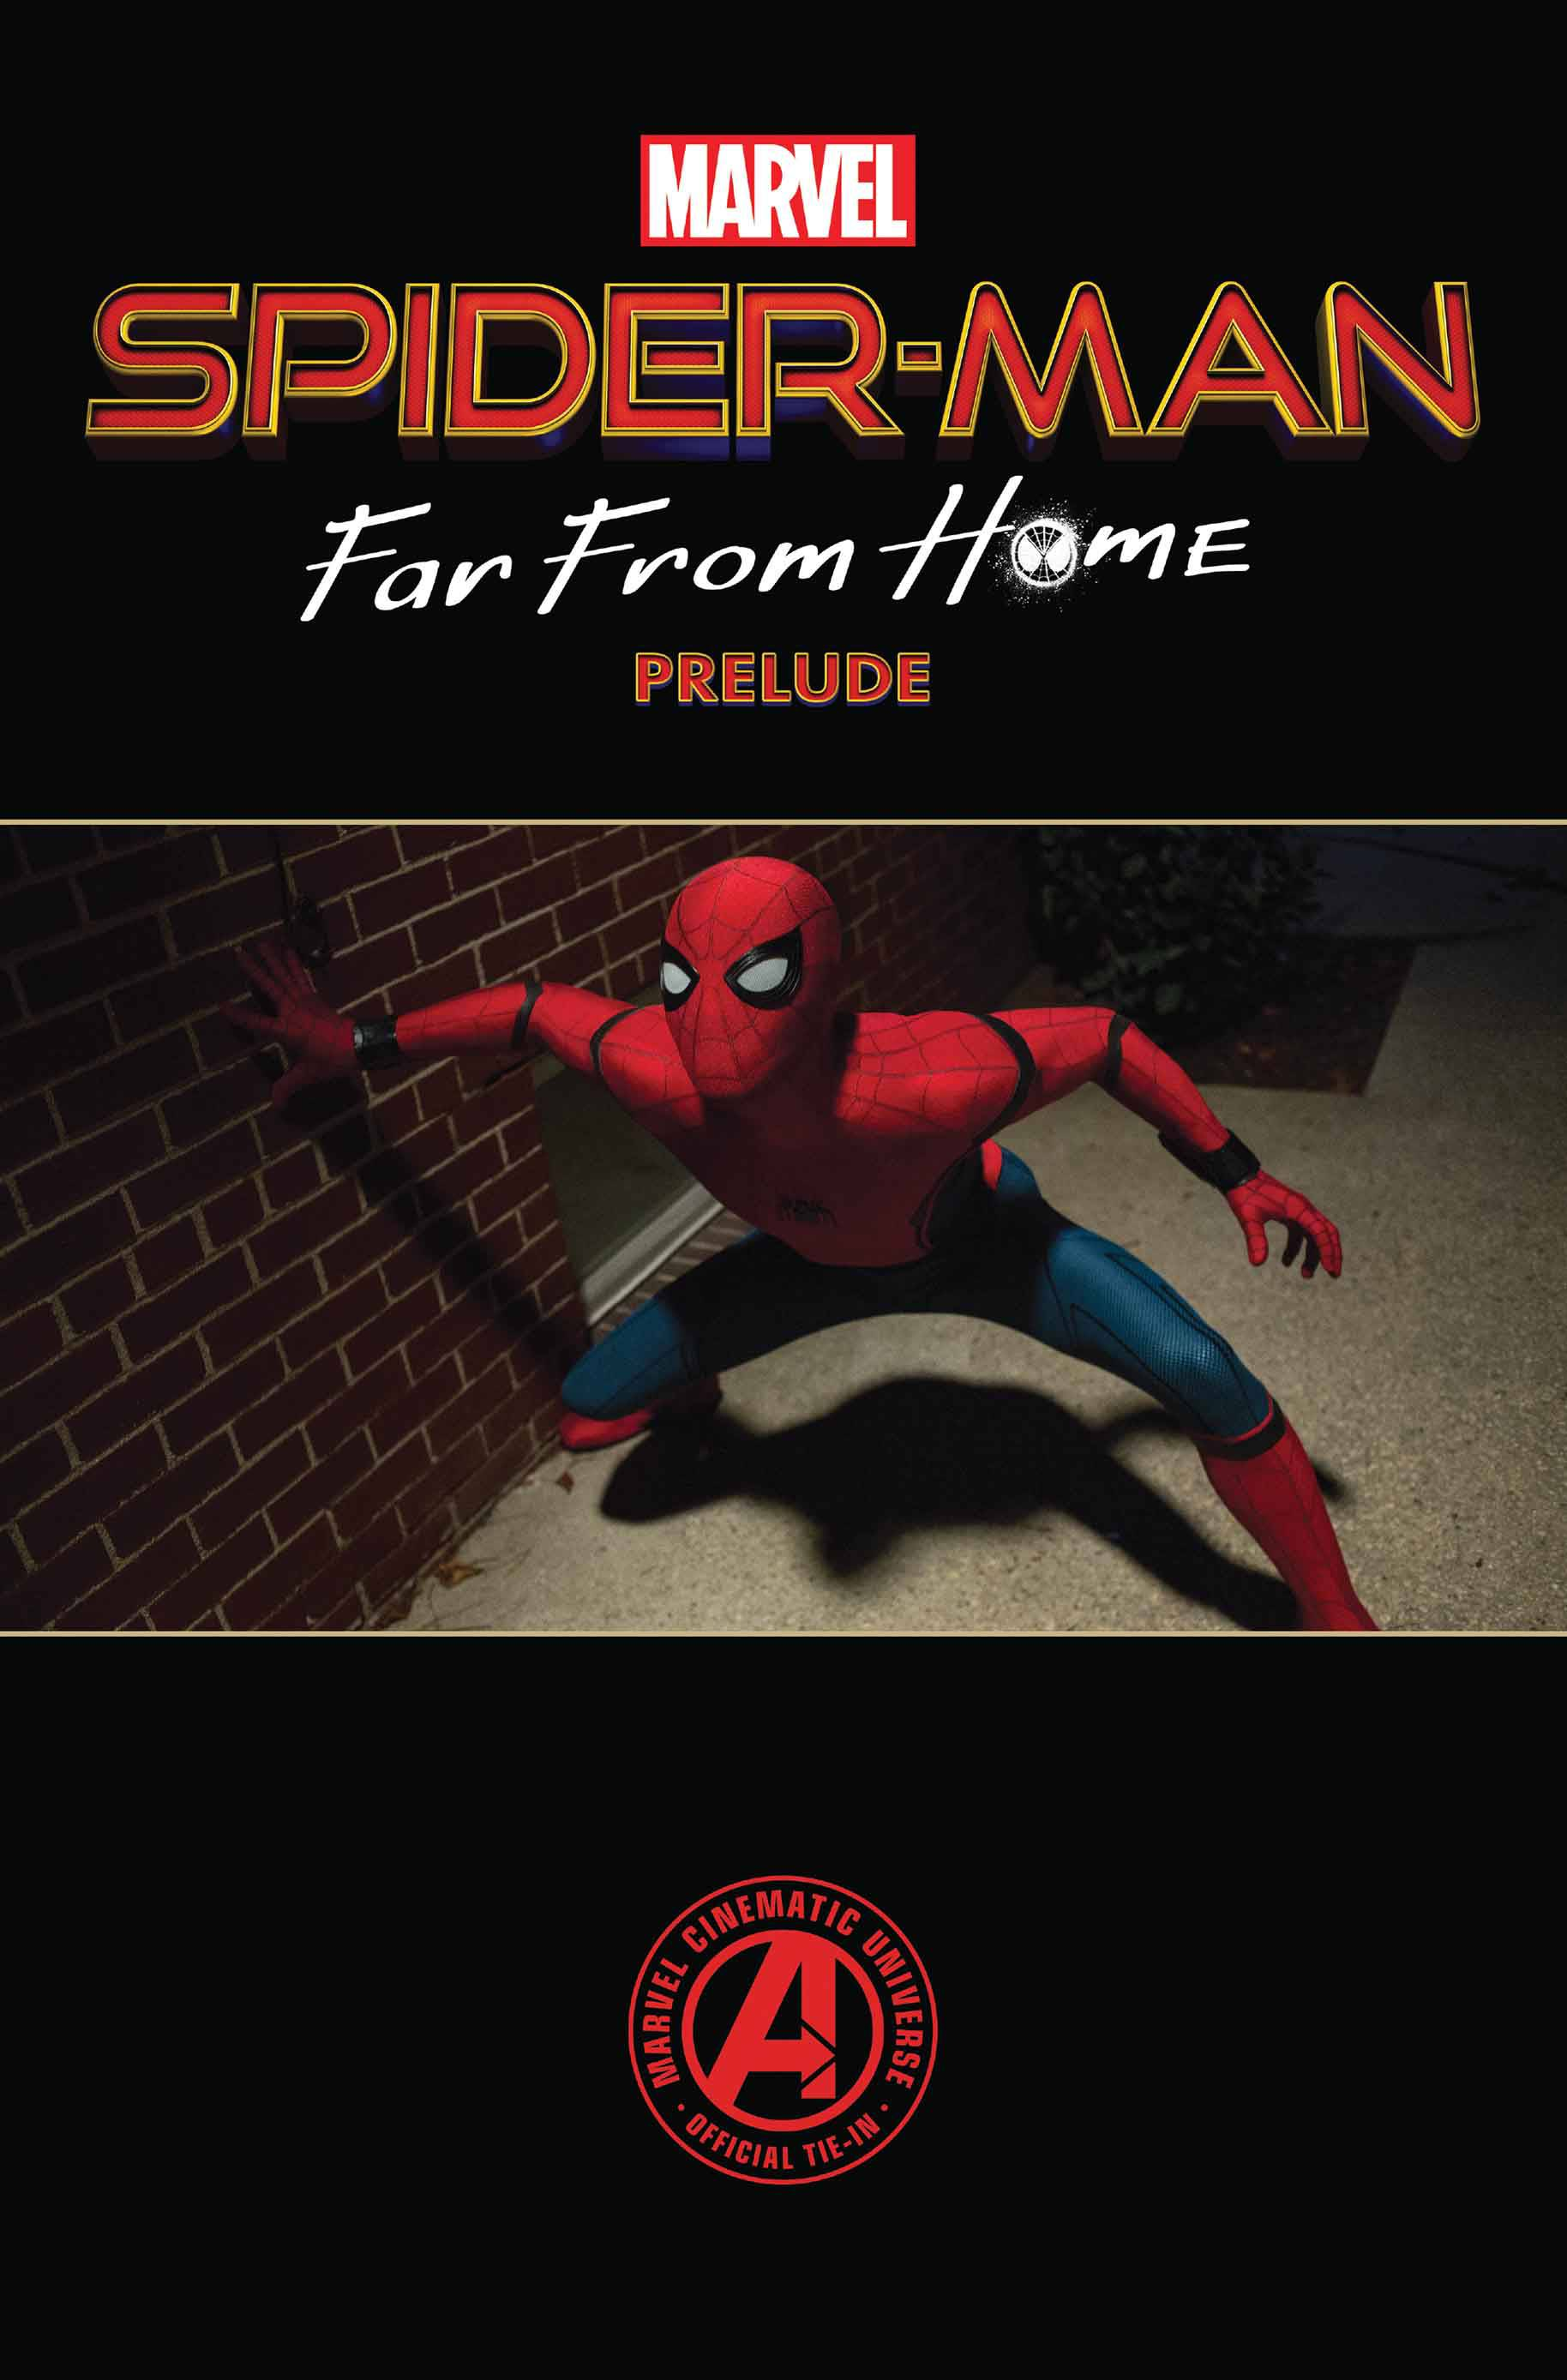 SPIDER-MAN FAR FROM HOME PRELUDE 1 of 2.jpg